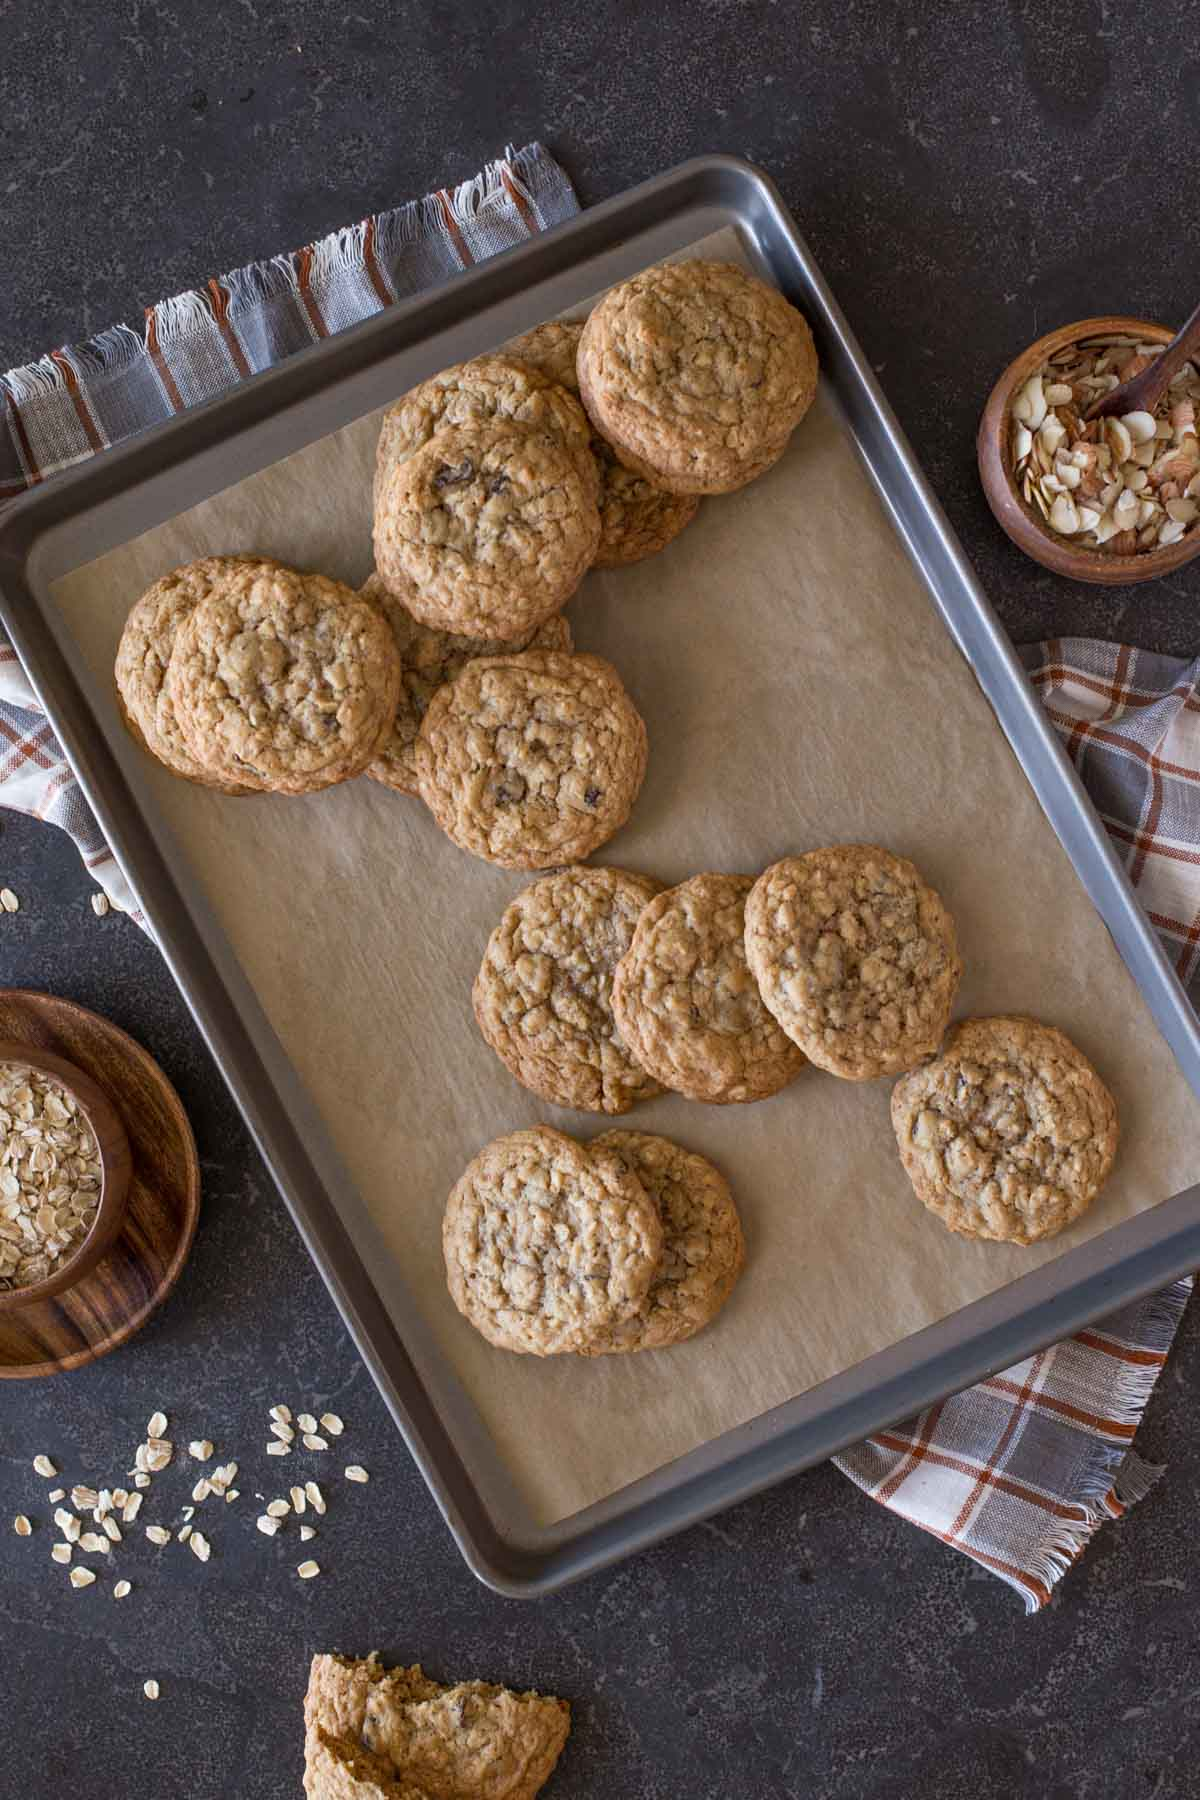 Bakery Style Oatmeal Raisin Cookies on a parchment paper lined baking sheet, with a small wood bowl of oats on one side of the baking sheet, and a small wood bowl of slice almonds on the other side.